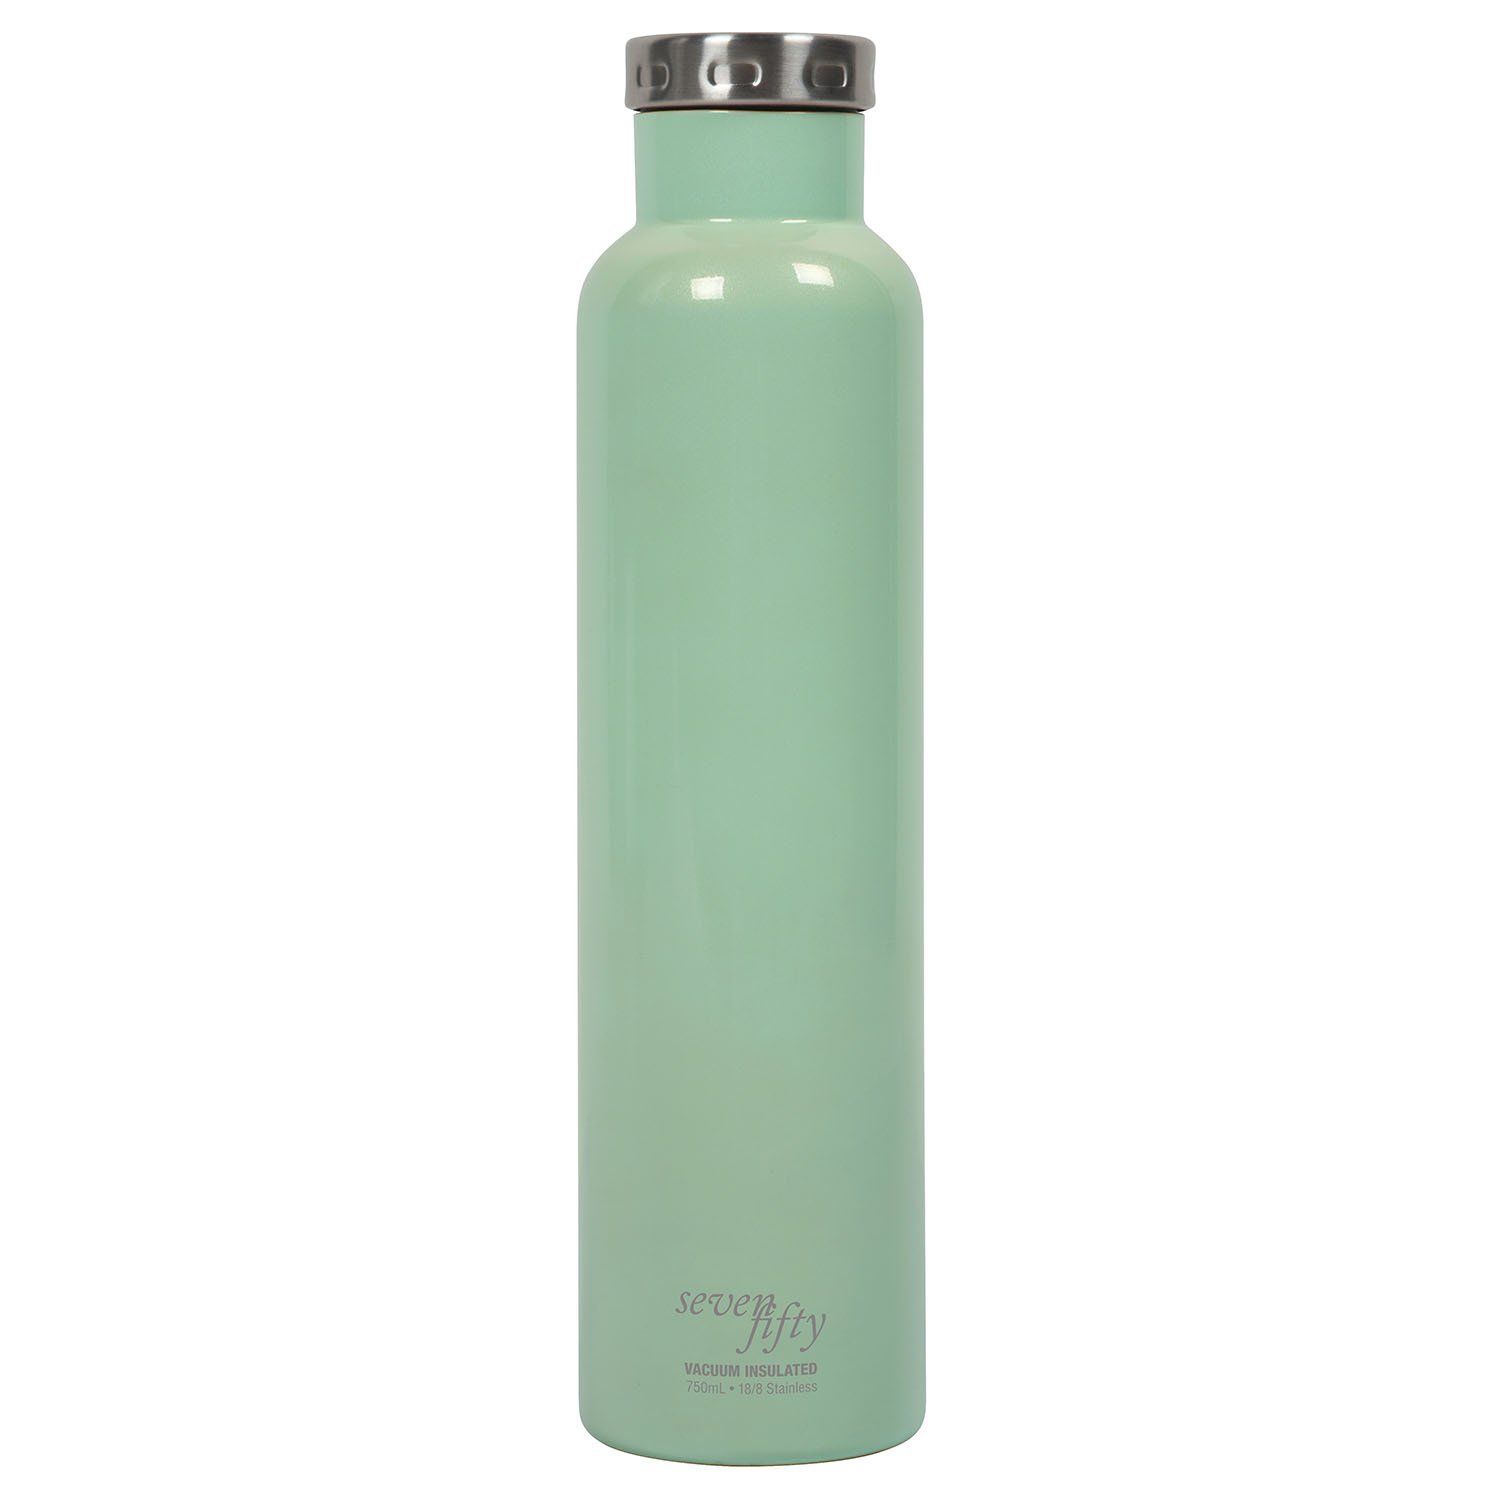 Fifty/Fifty Seven Fifty Double Wall Vacuum Insulated Wine Growler, 18/8 Stainless Steel, 750ml, Cool Mint